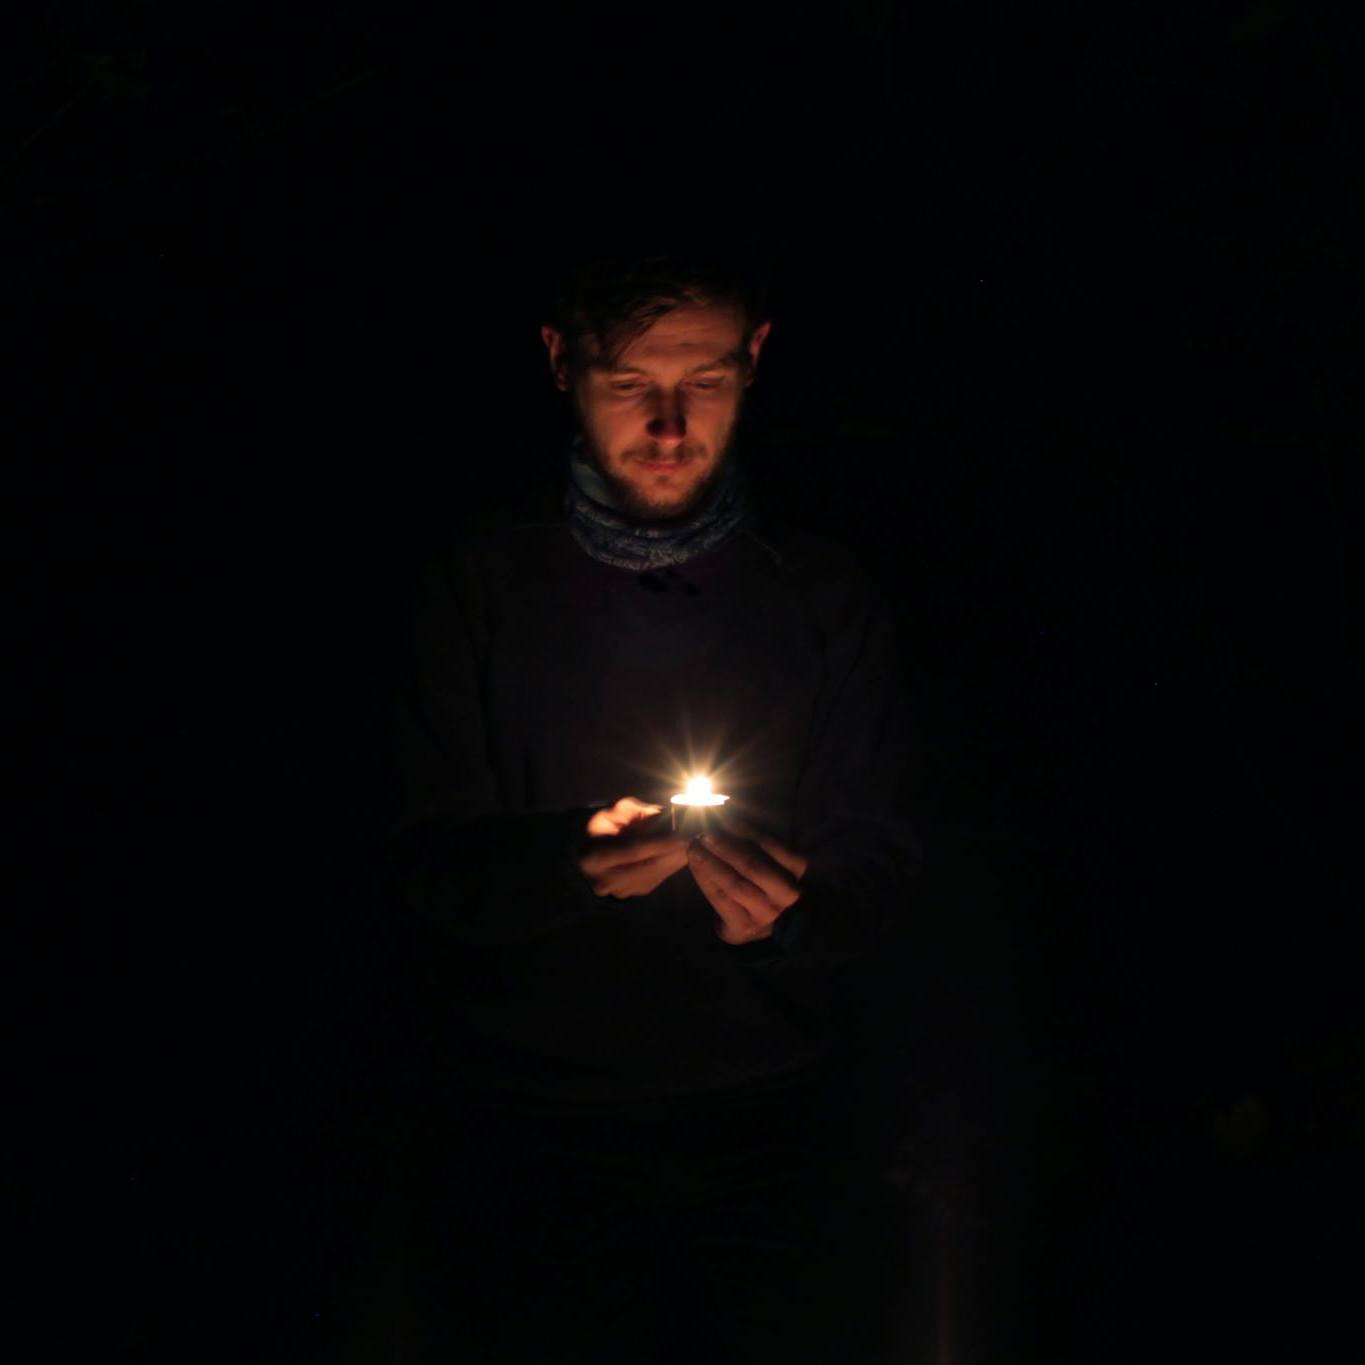 Thom Scullion looks down at a candle burning in his hands. He is a white man in his 30s. His face is bathed in an orange glow while around him is darkness.